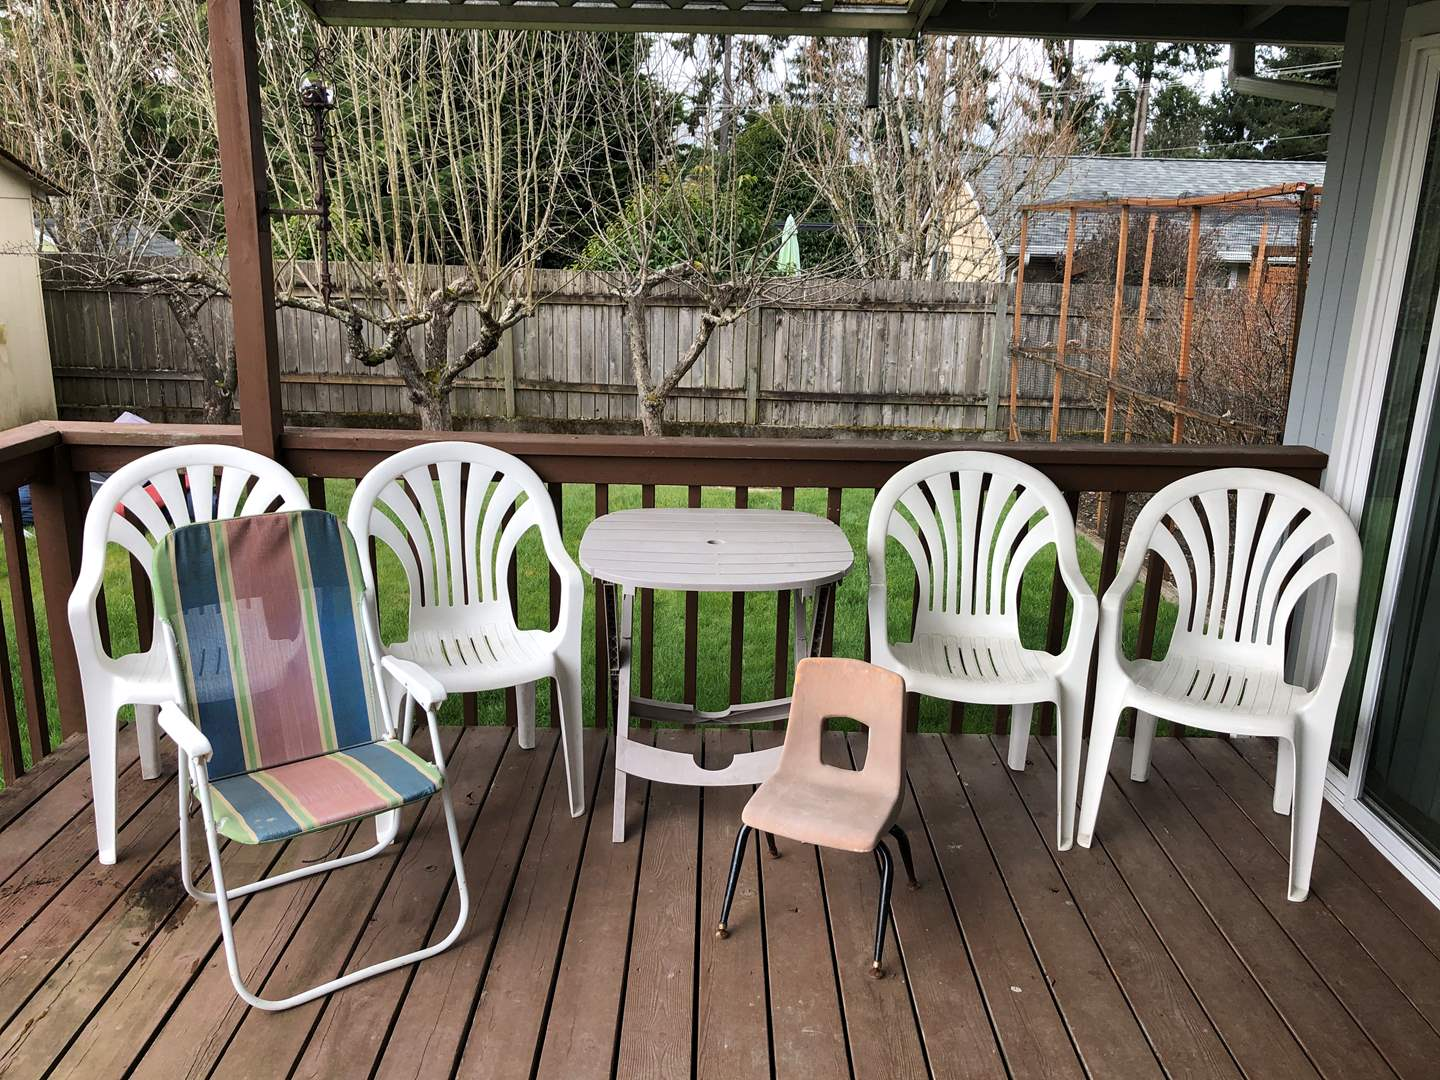 Lot # 244 - Plastic Outdoor Chairs, Outdoor Table, Child's Chair, Folding Beach Chair & Yard Decor (main image)